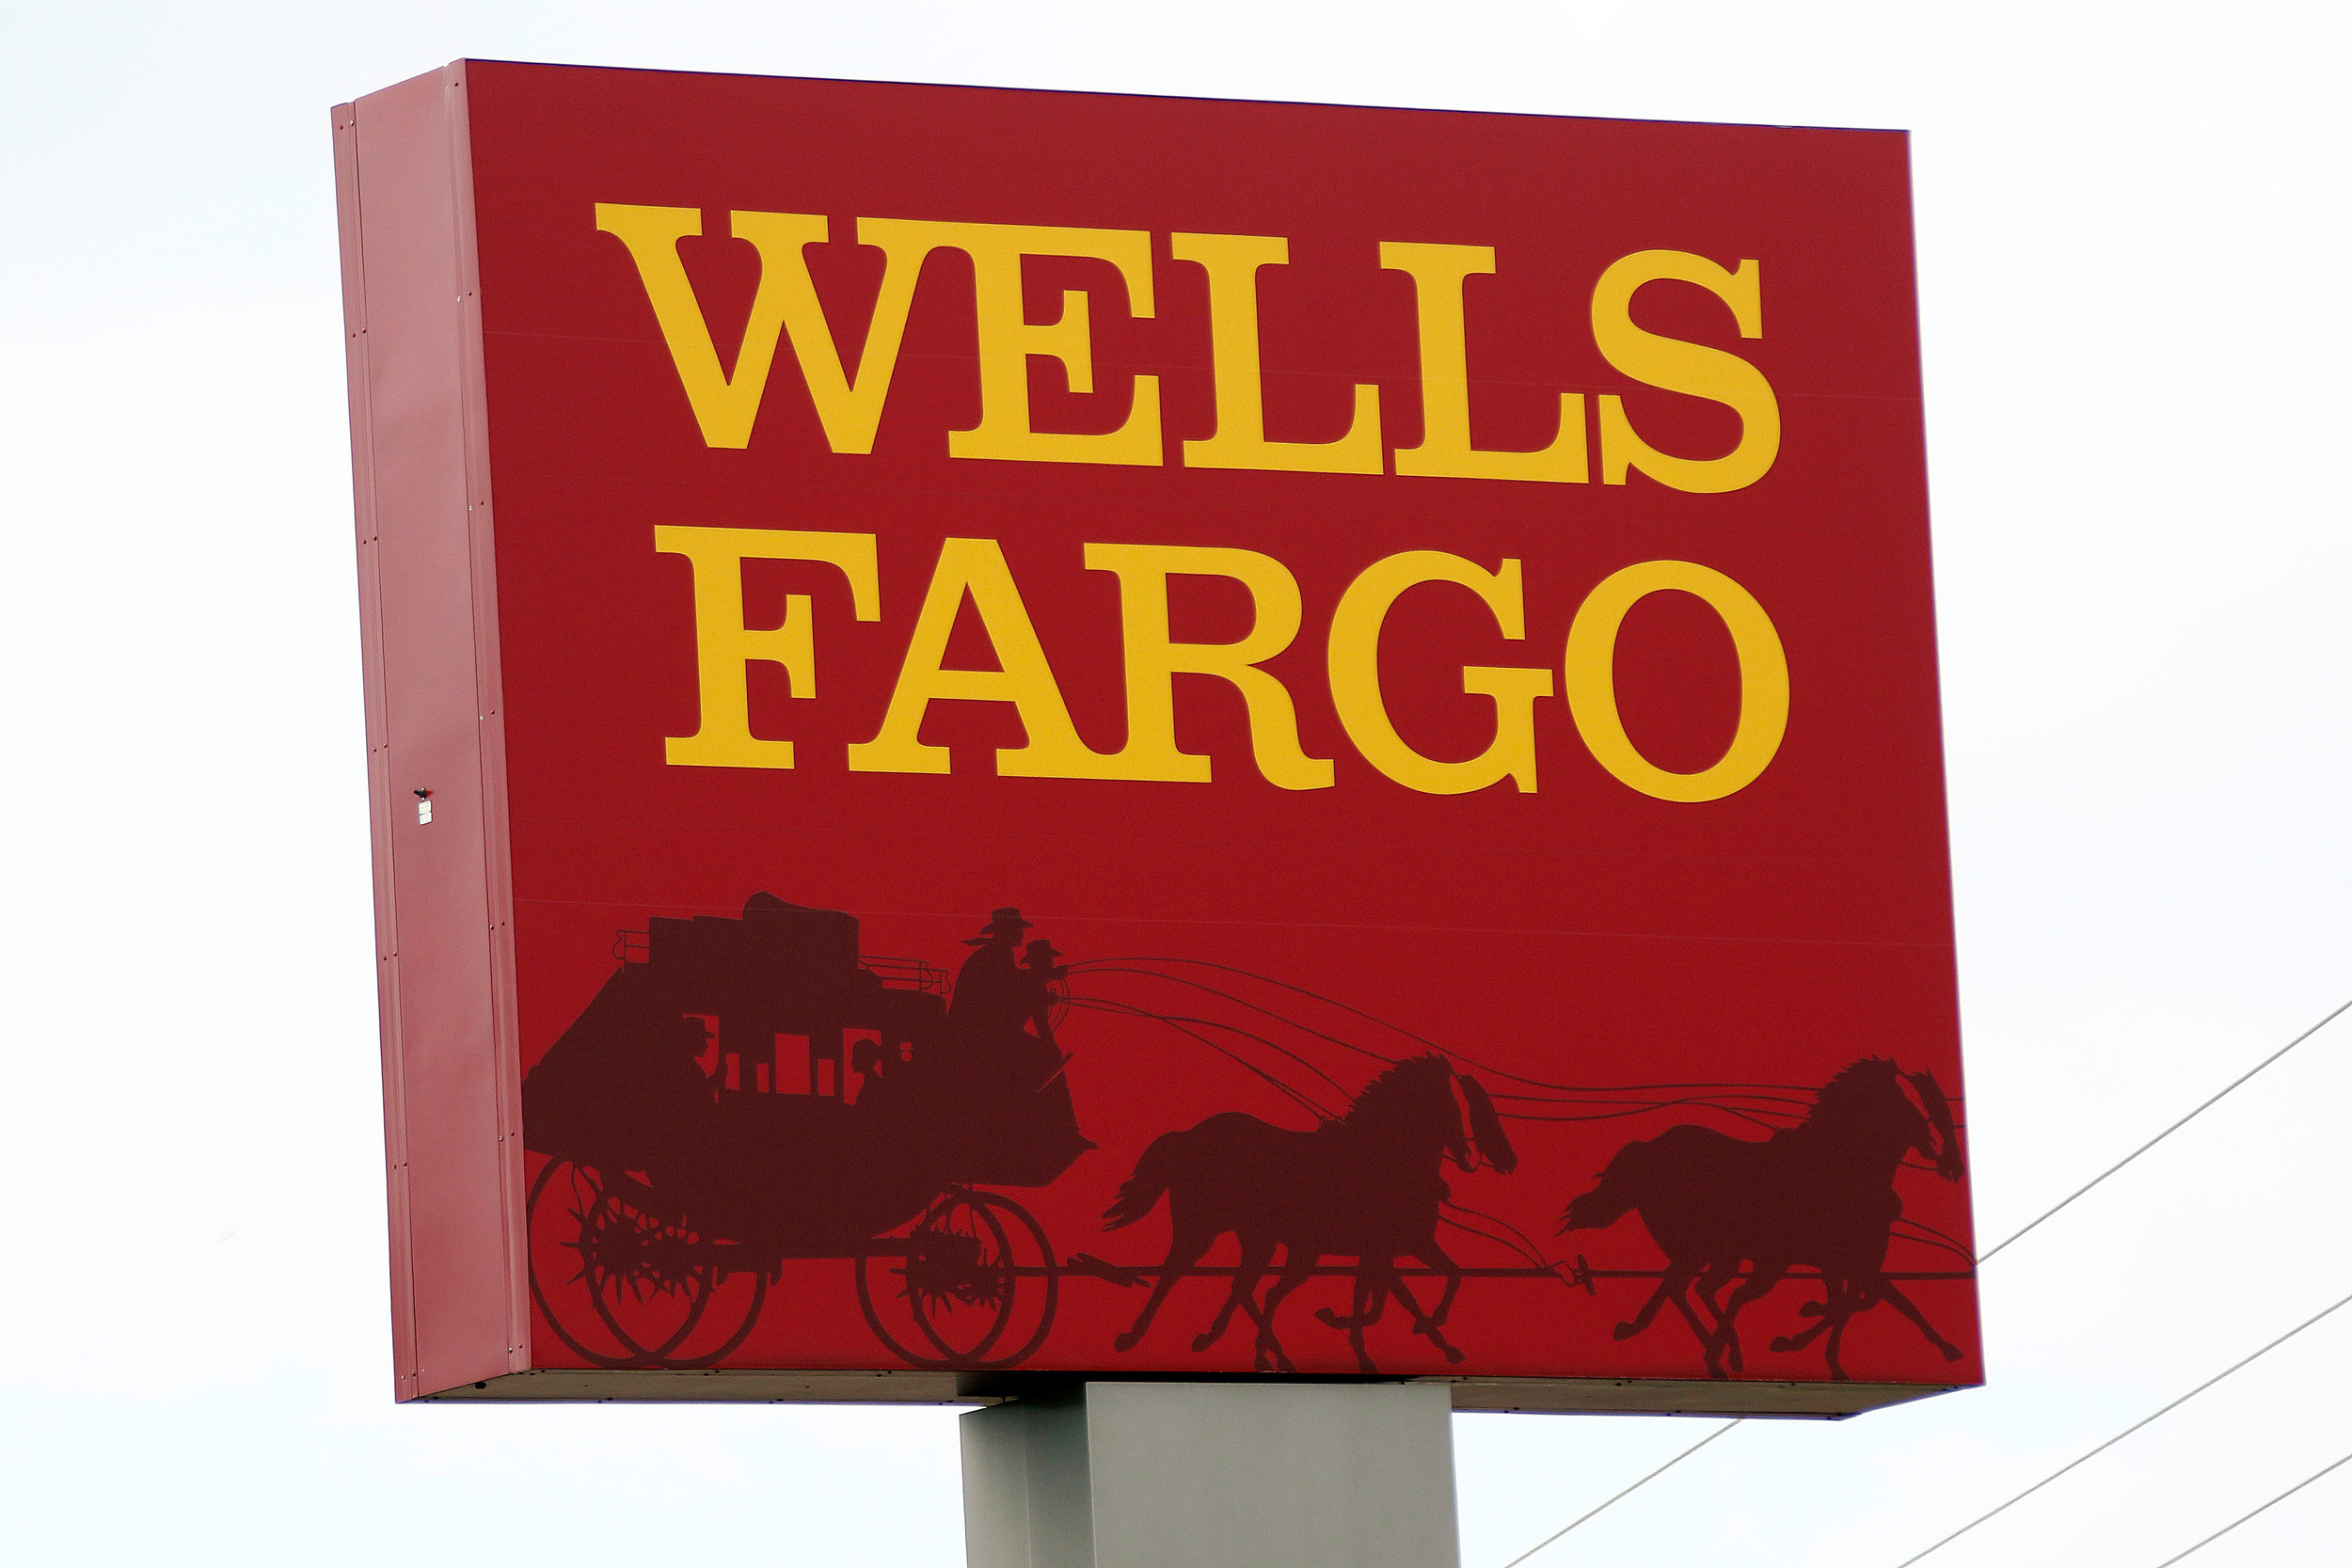 Wells Fargo & Company Review Finds Another 1 Mln Potentially Unauthorized Accounts